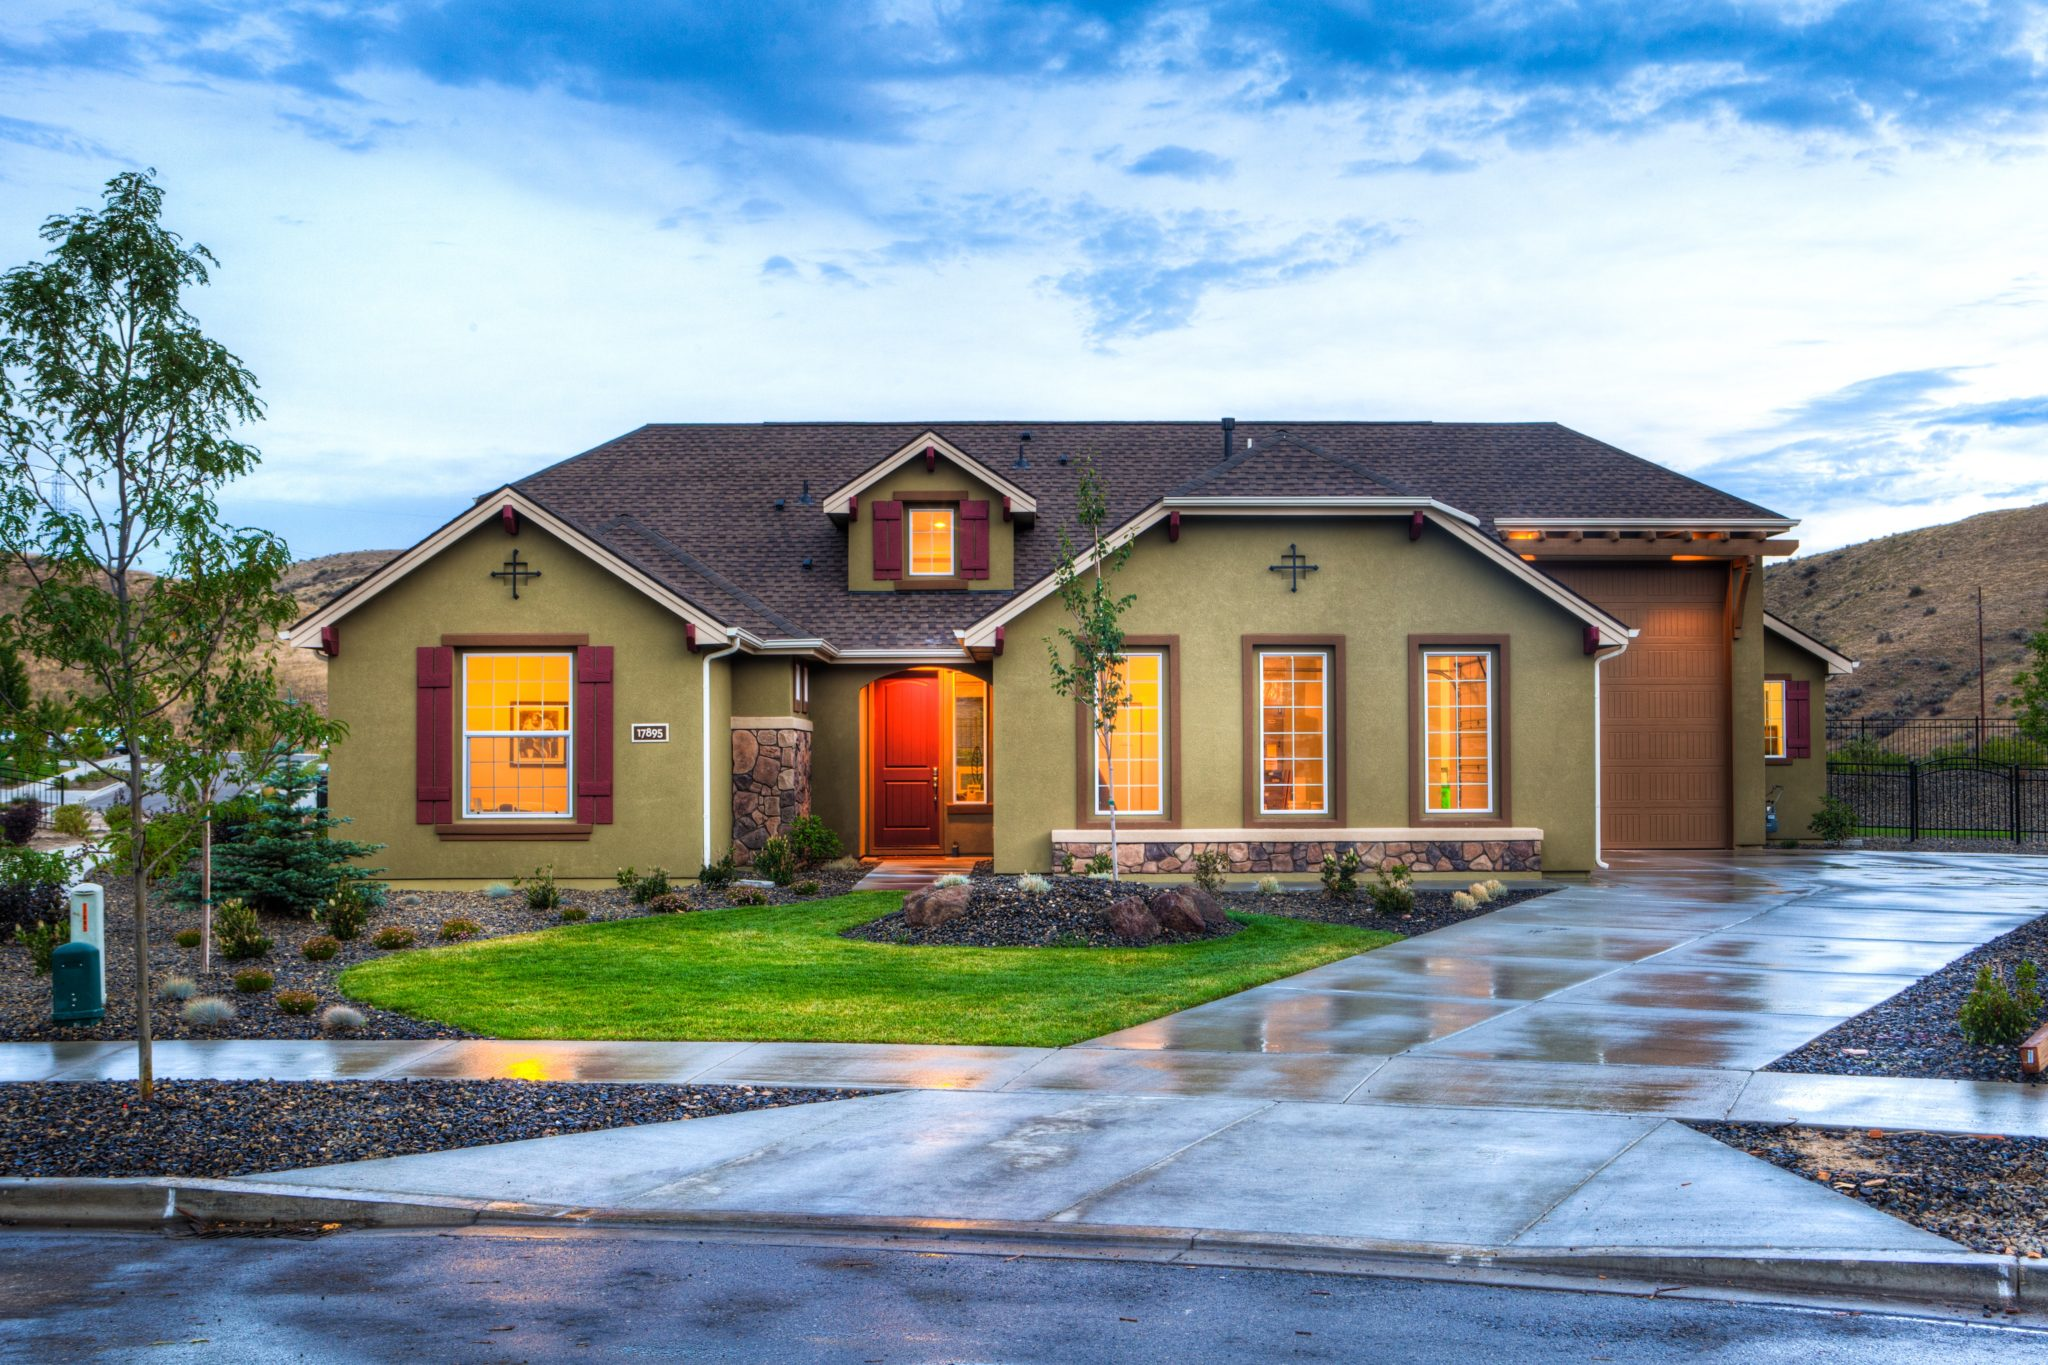 Five Things to Consider While Selecting Your Dream Home